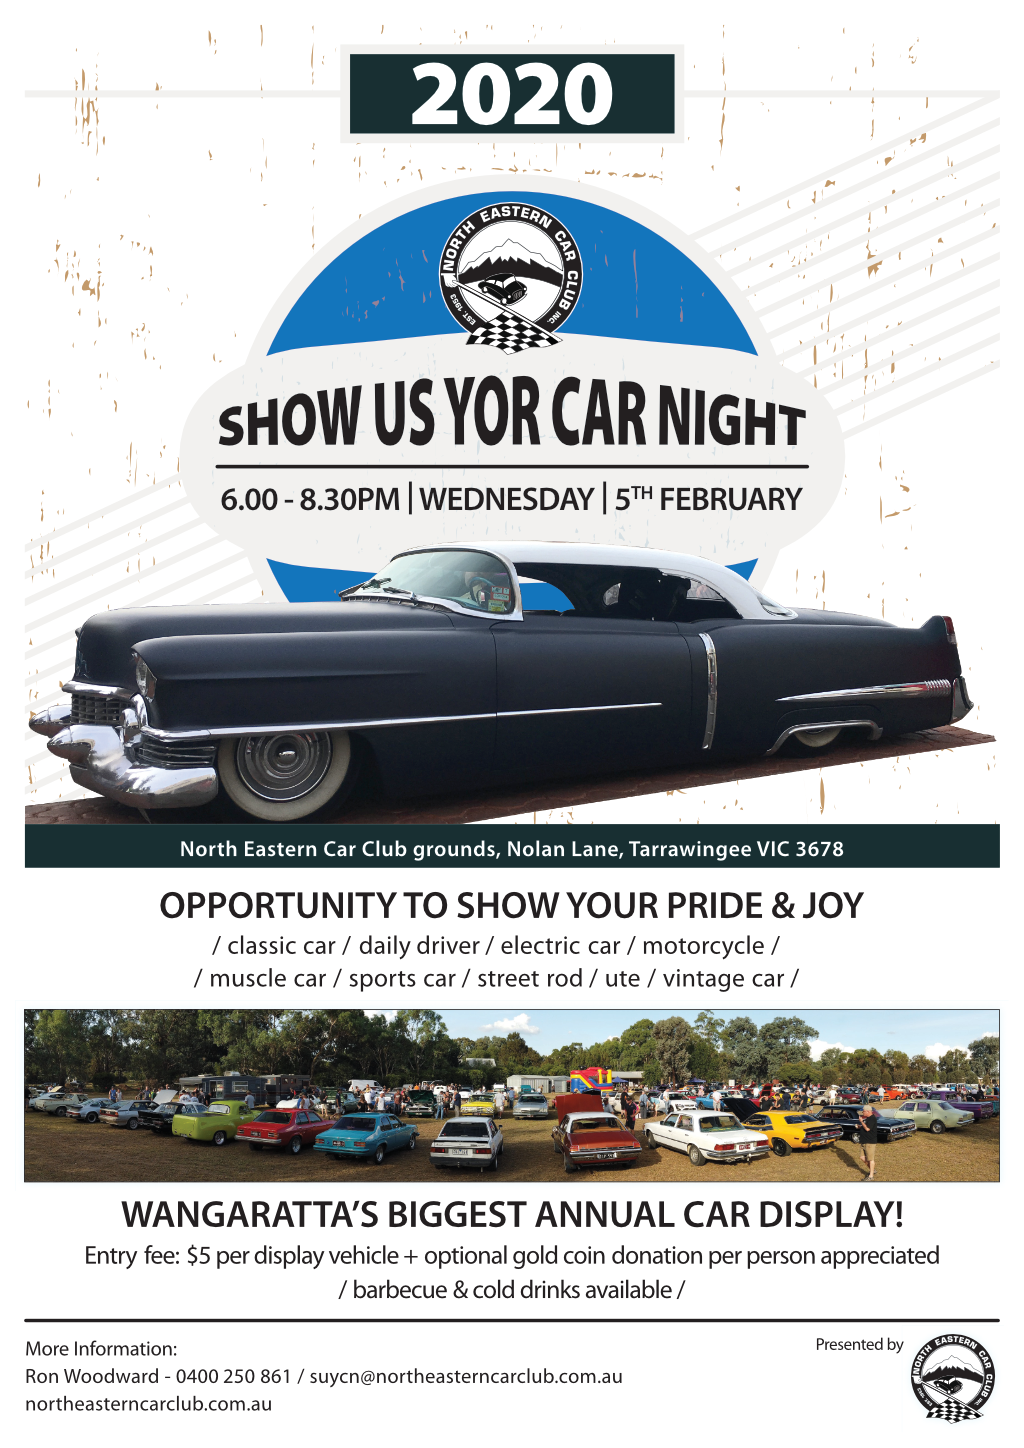 Show Us YOur Car Night 2020